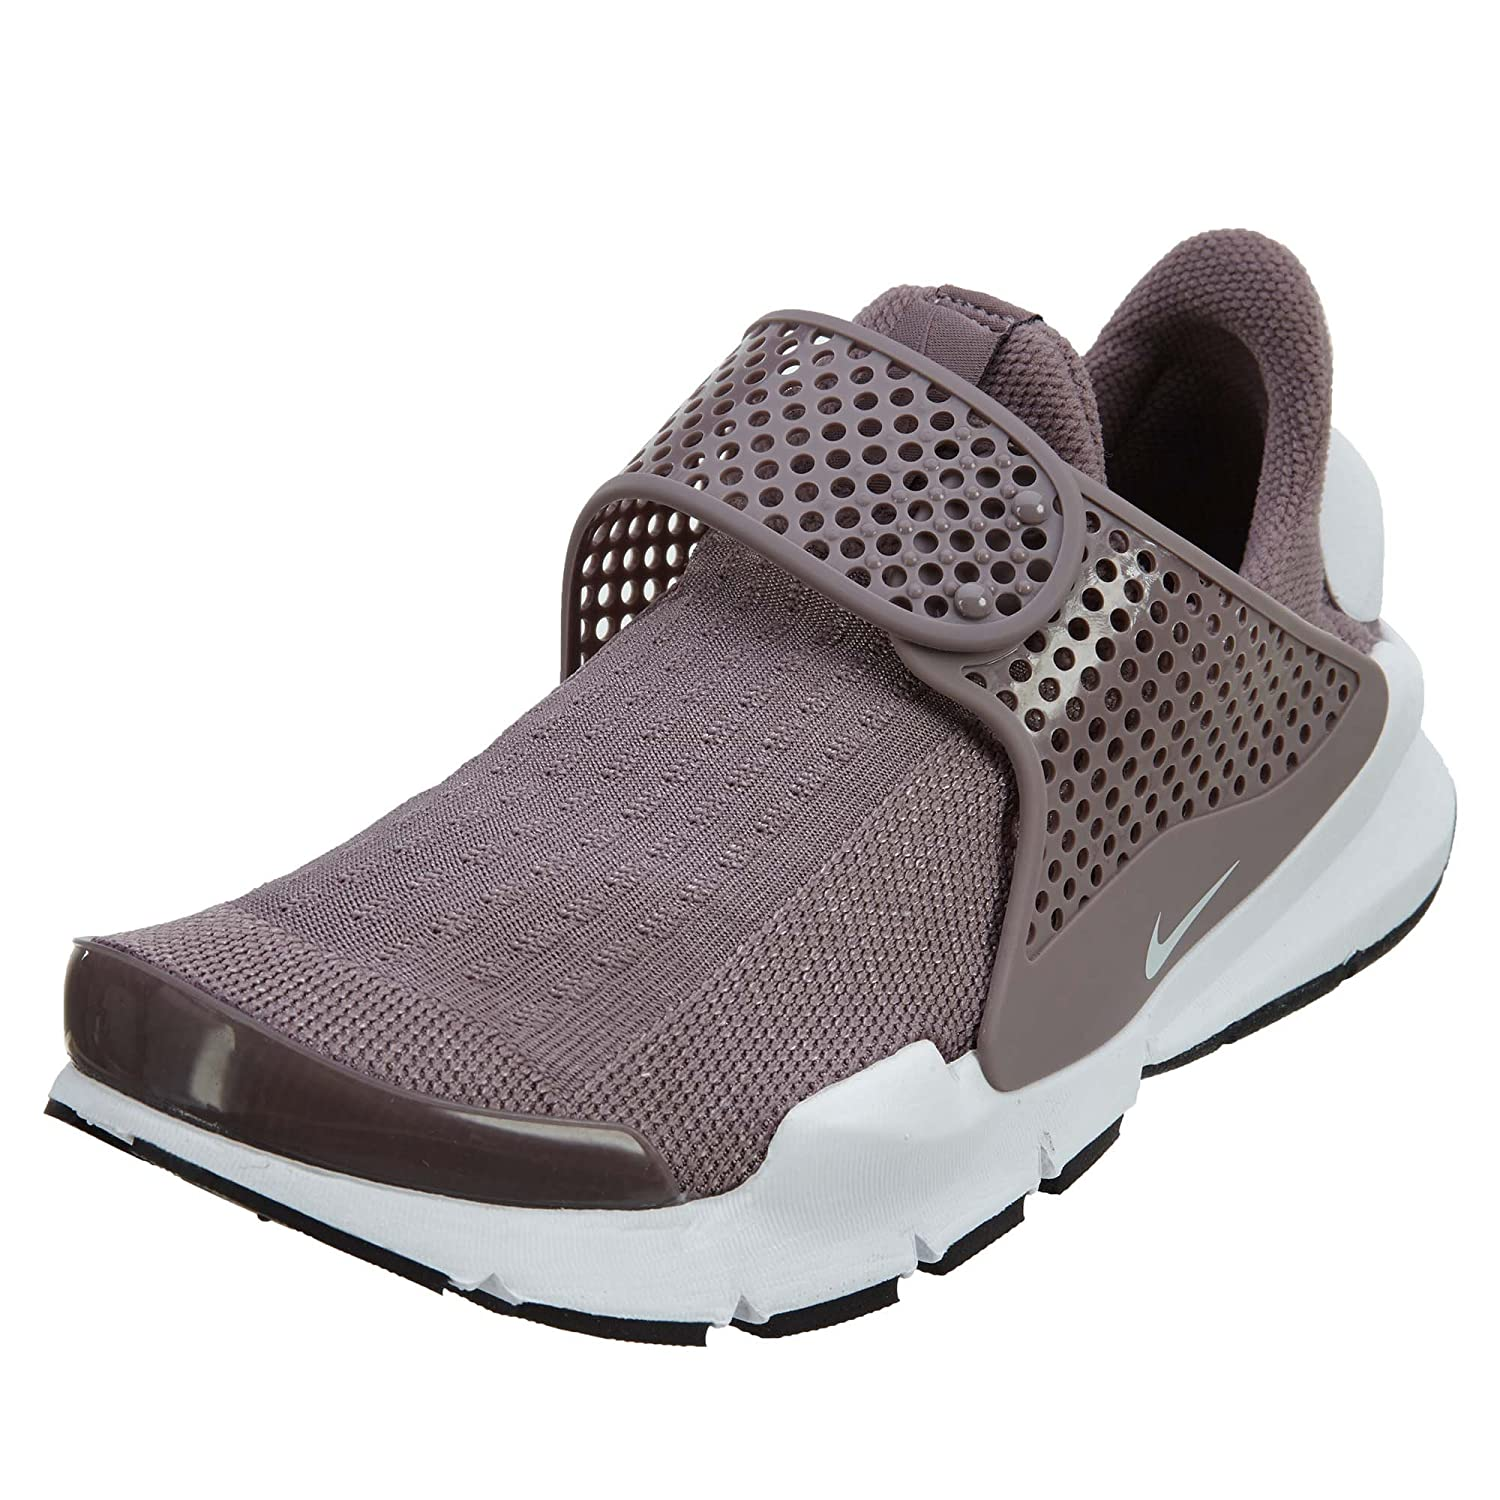 NIKE Womens Sock Dart Running Shoes B073S3226D 9 B(M) US|Taupe Grey/White-black